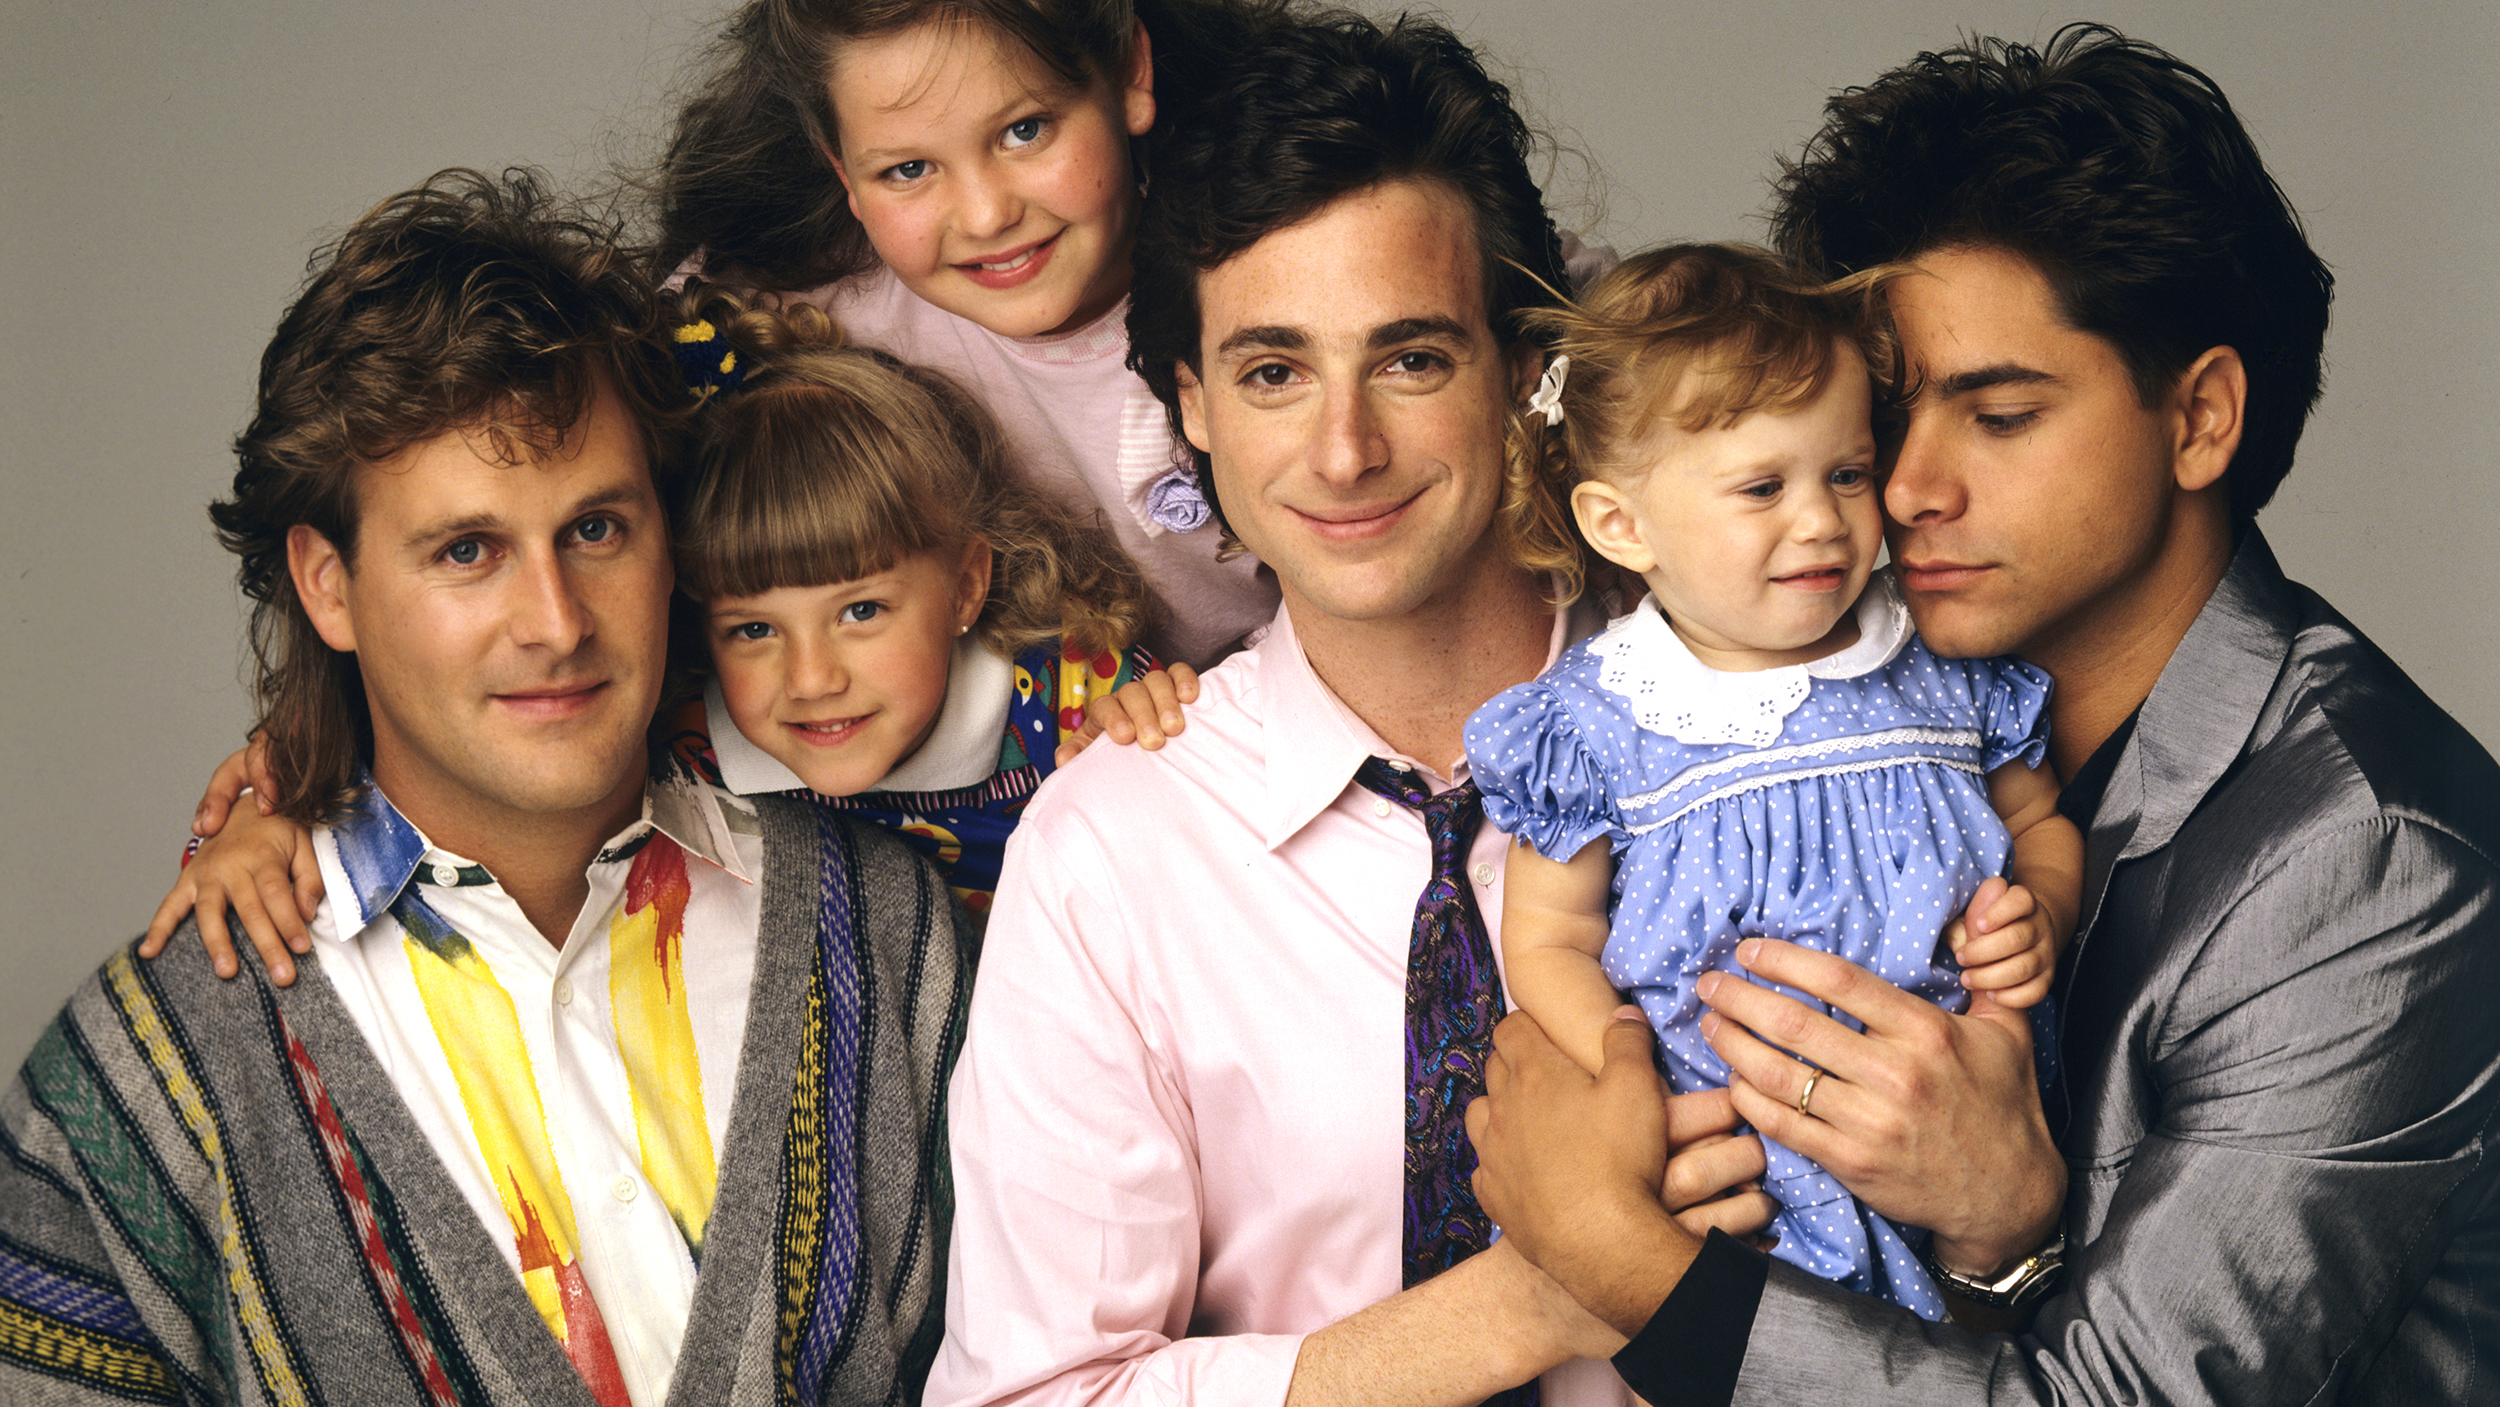 John Stamos on Fuller House cast We never stopped loving each